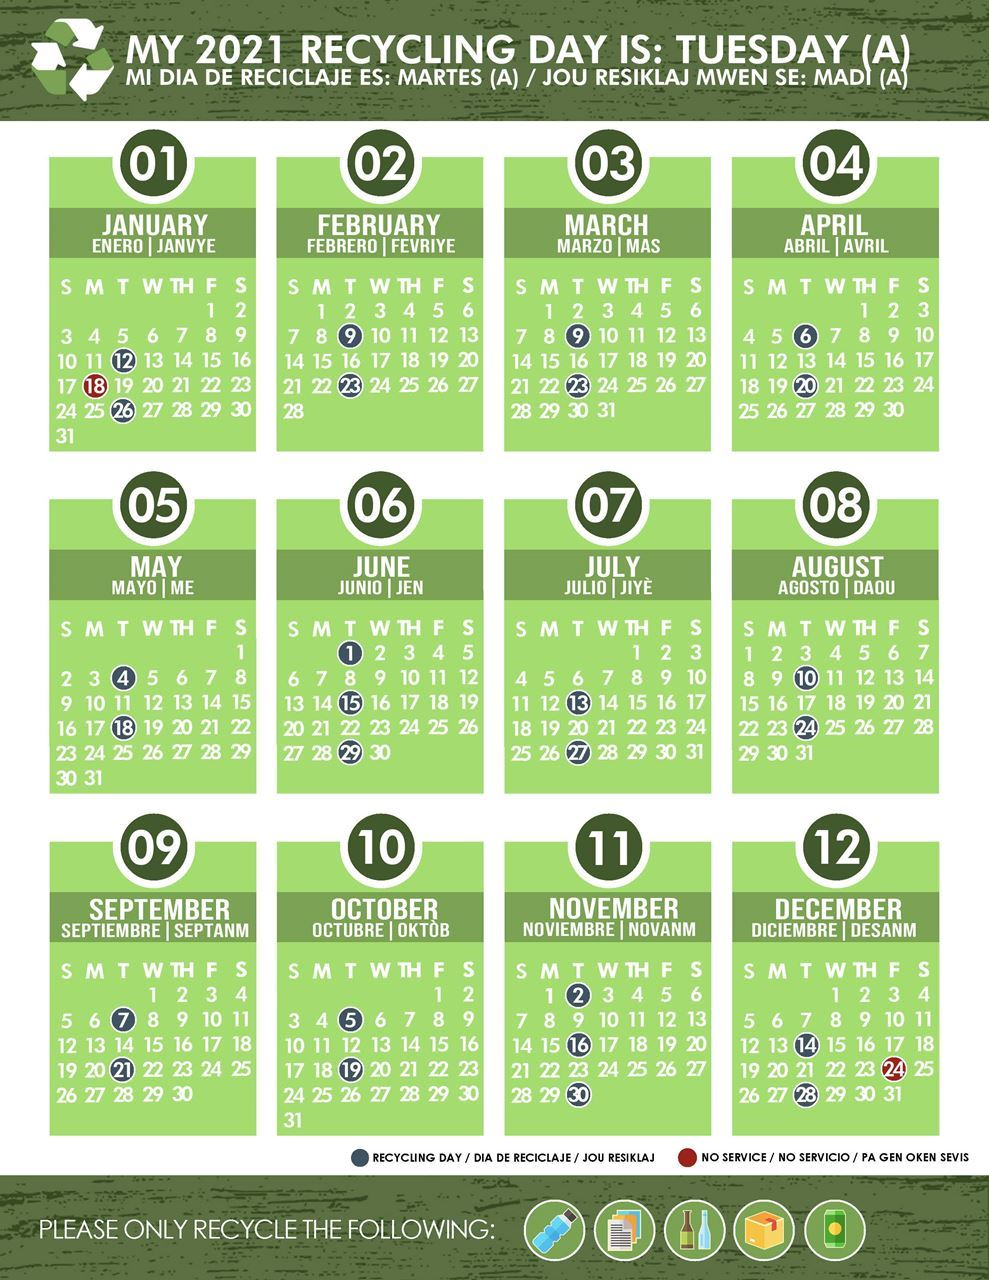 Recycling Schedule 2021 Miami Dade Christmas Morningside Civic Association Trash Recycling